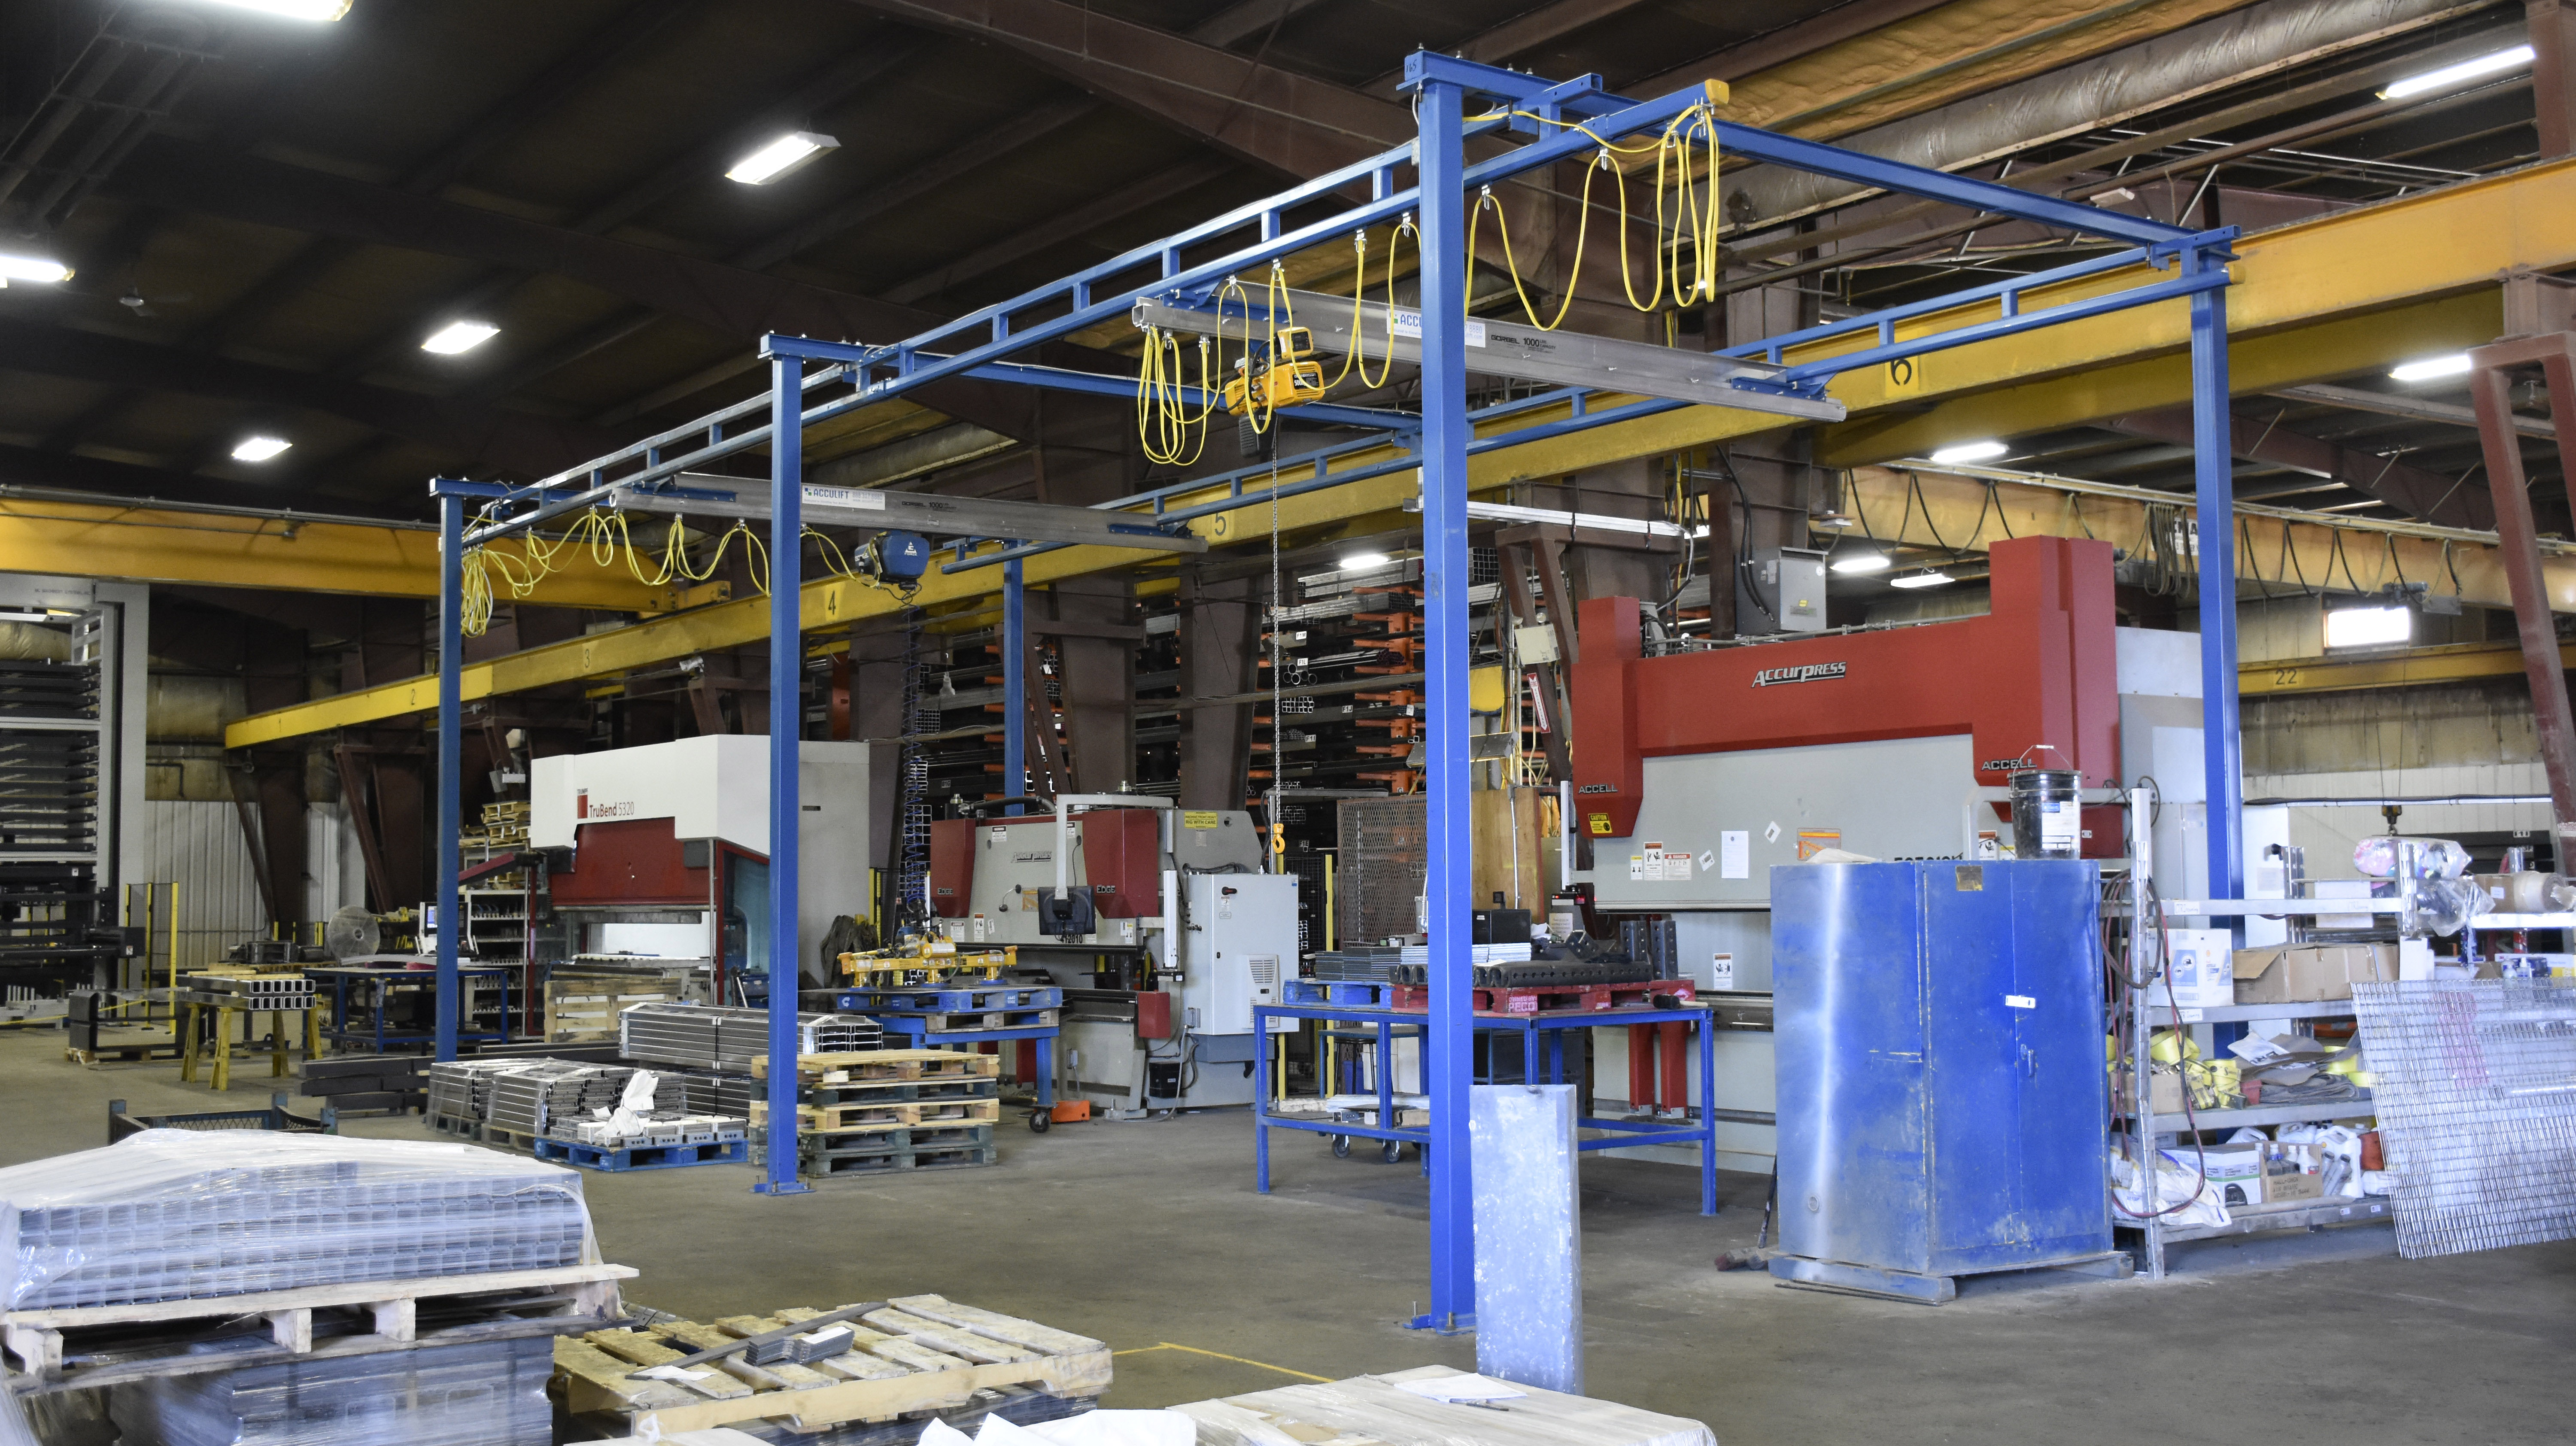 6 column - relocating and expanding acculift existing crane systems for steel processor